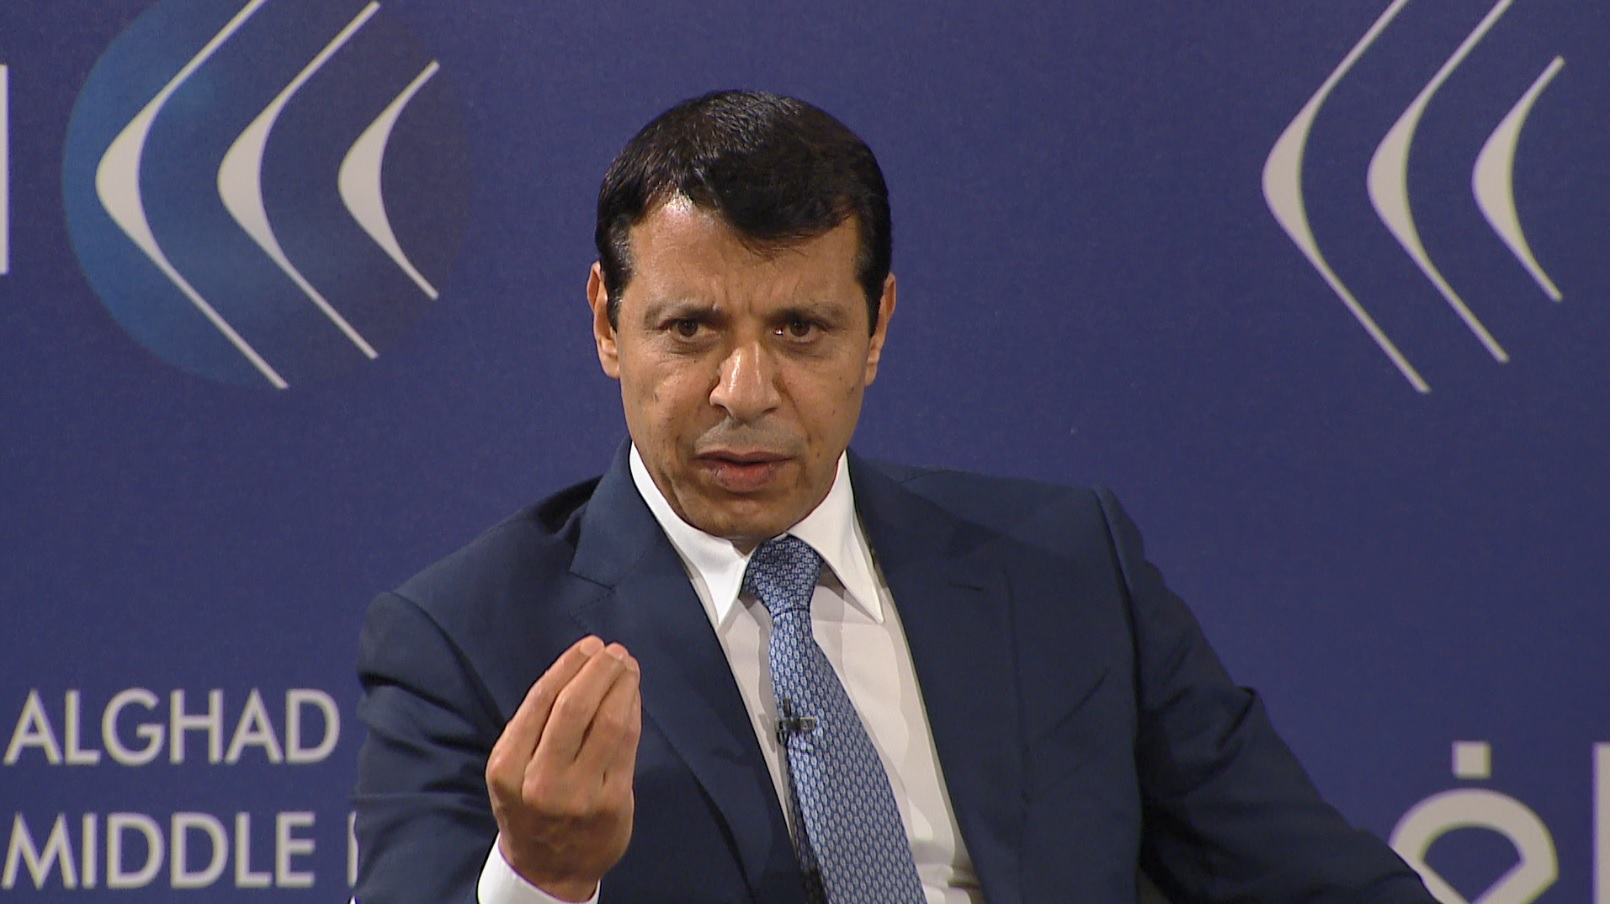 Mohammed Dahlan: The US will not succeed in excluding Jerusalem from the final negotiations